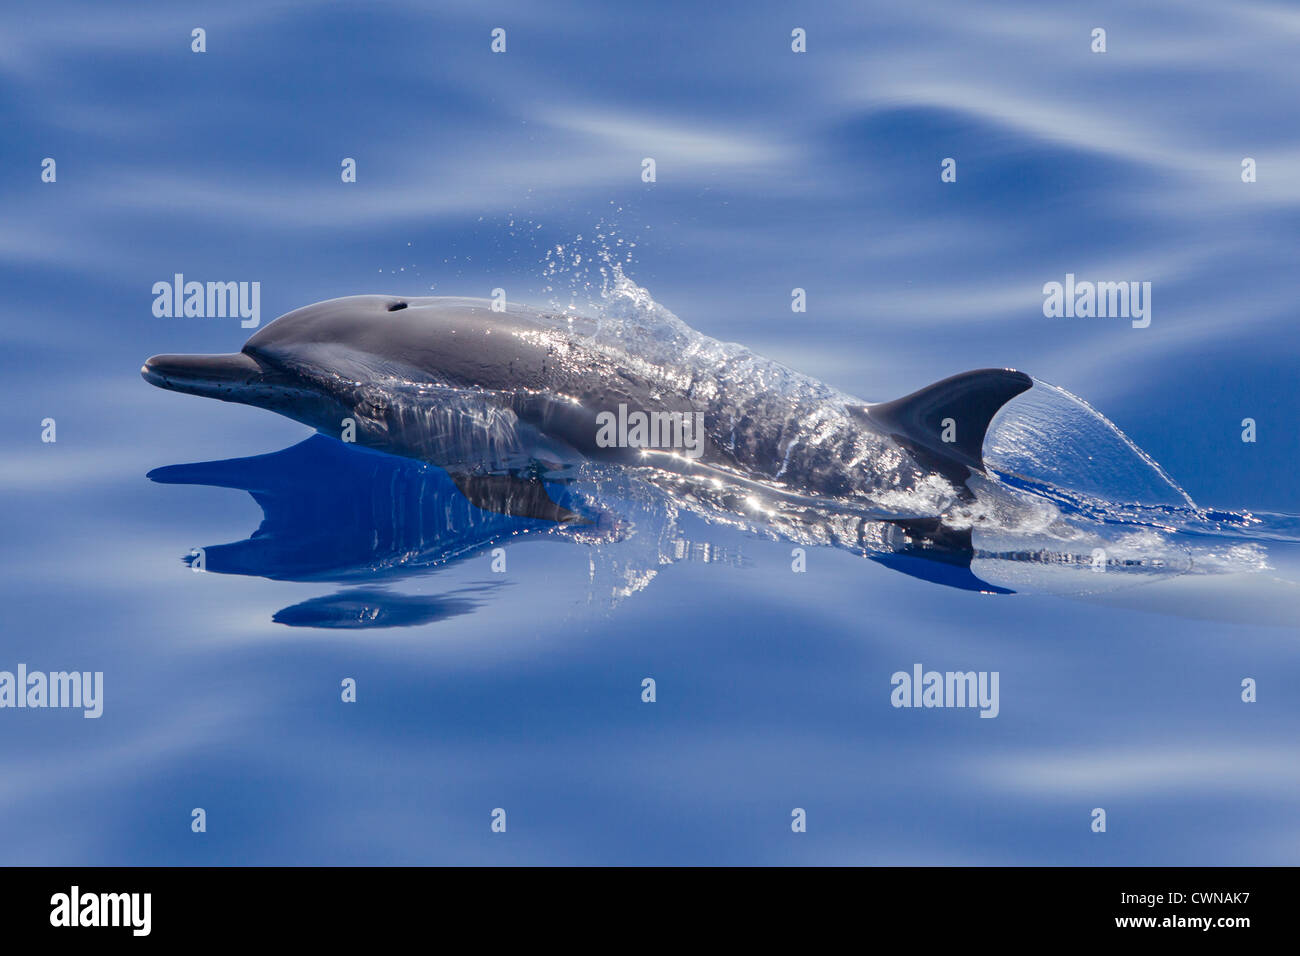 Pantropical Spotted Dolphin, Stenella attenuata, Schlankdelfin, Maldives, adult surfacing - Stock Image